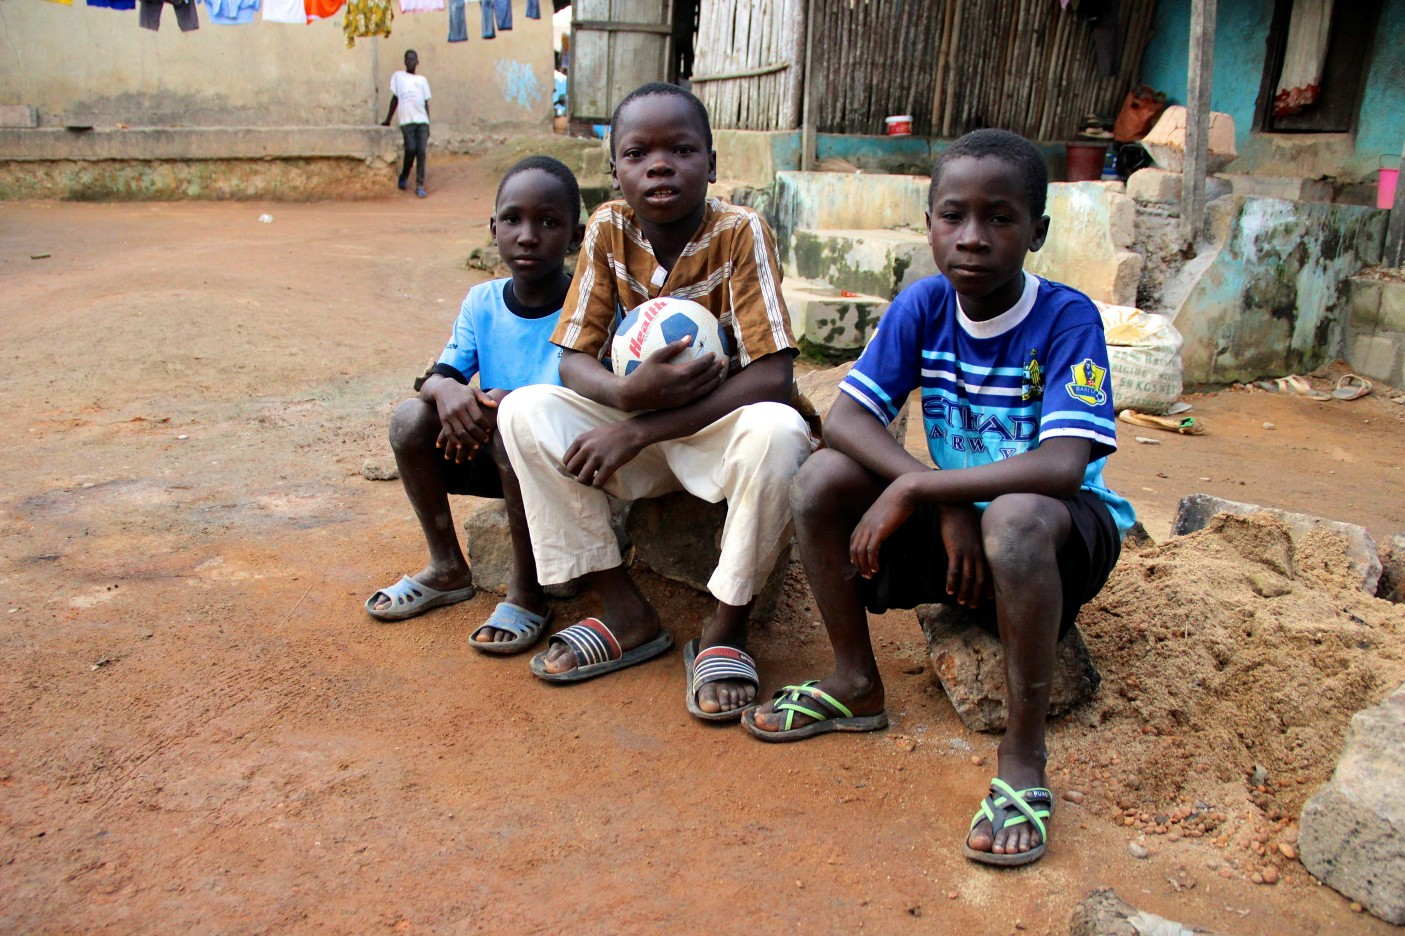 Côte d'Ivoire. Issa Stateless Children